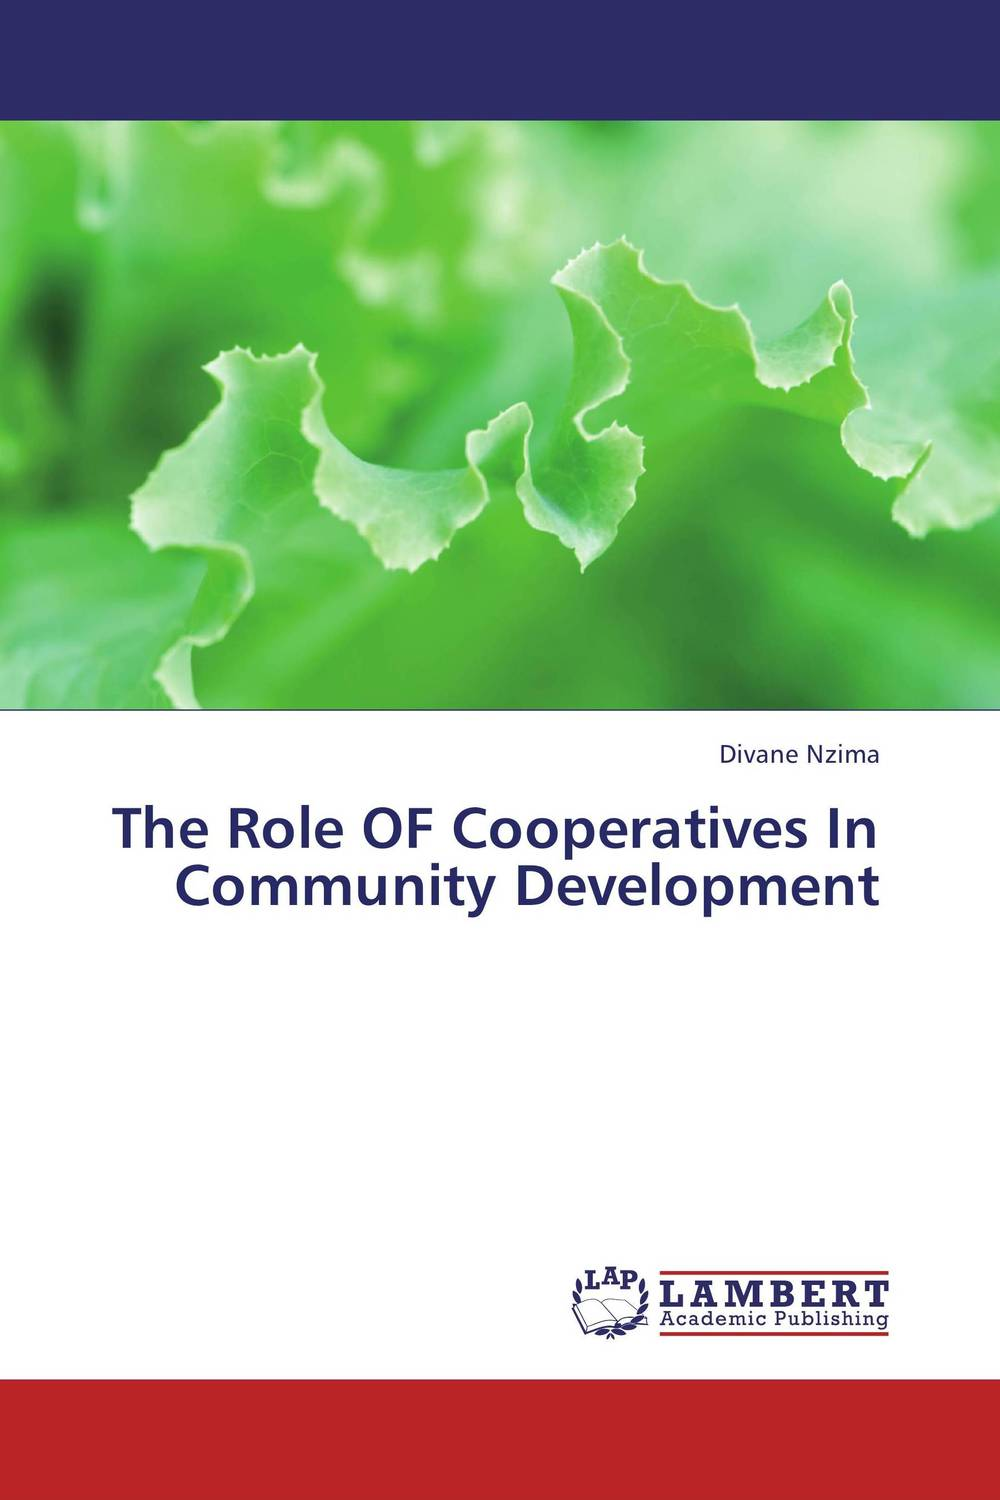 The Role OF Cooperatives In Community Development role of ict in rural poverty alleviation